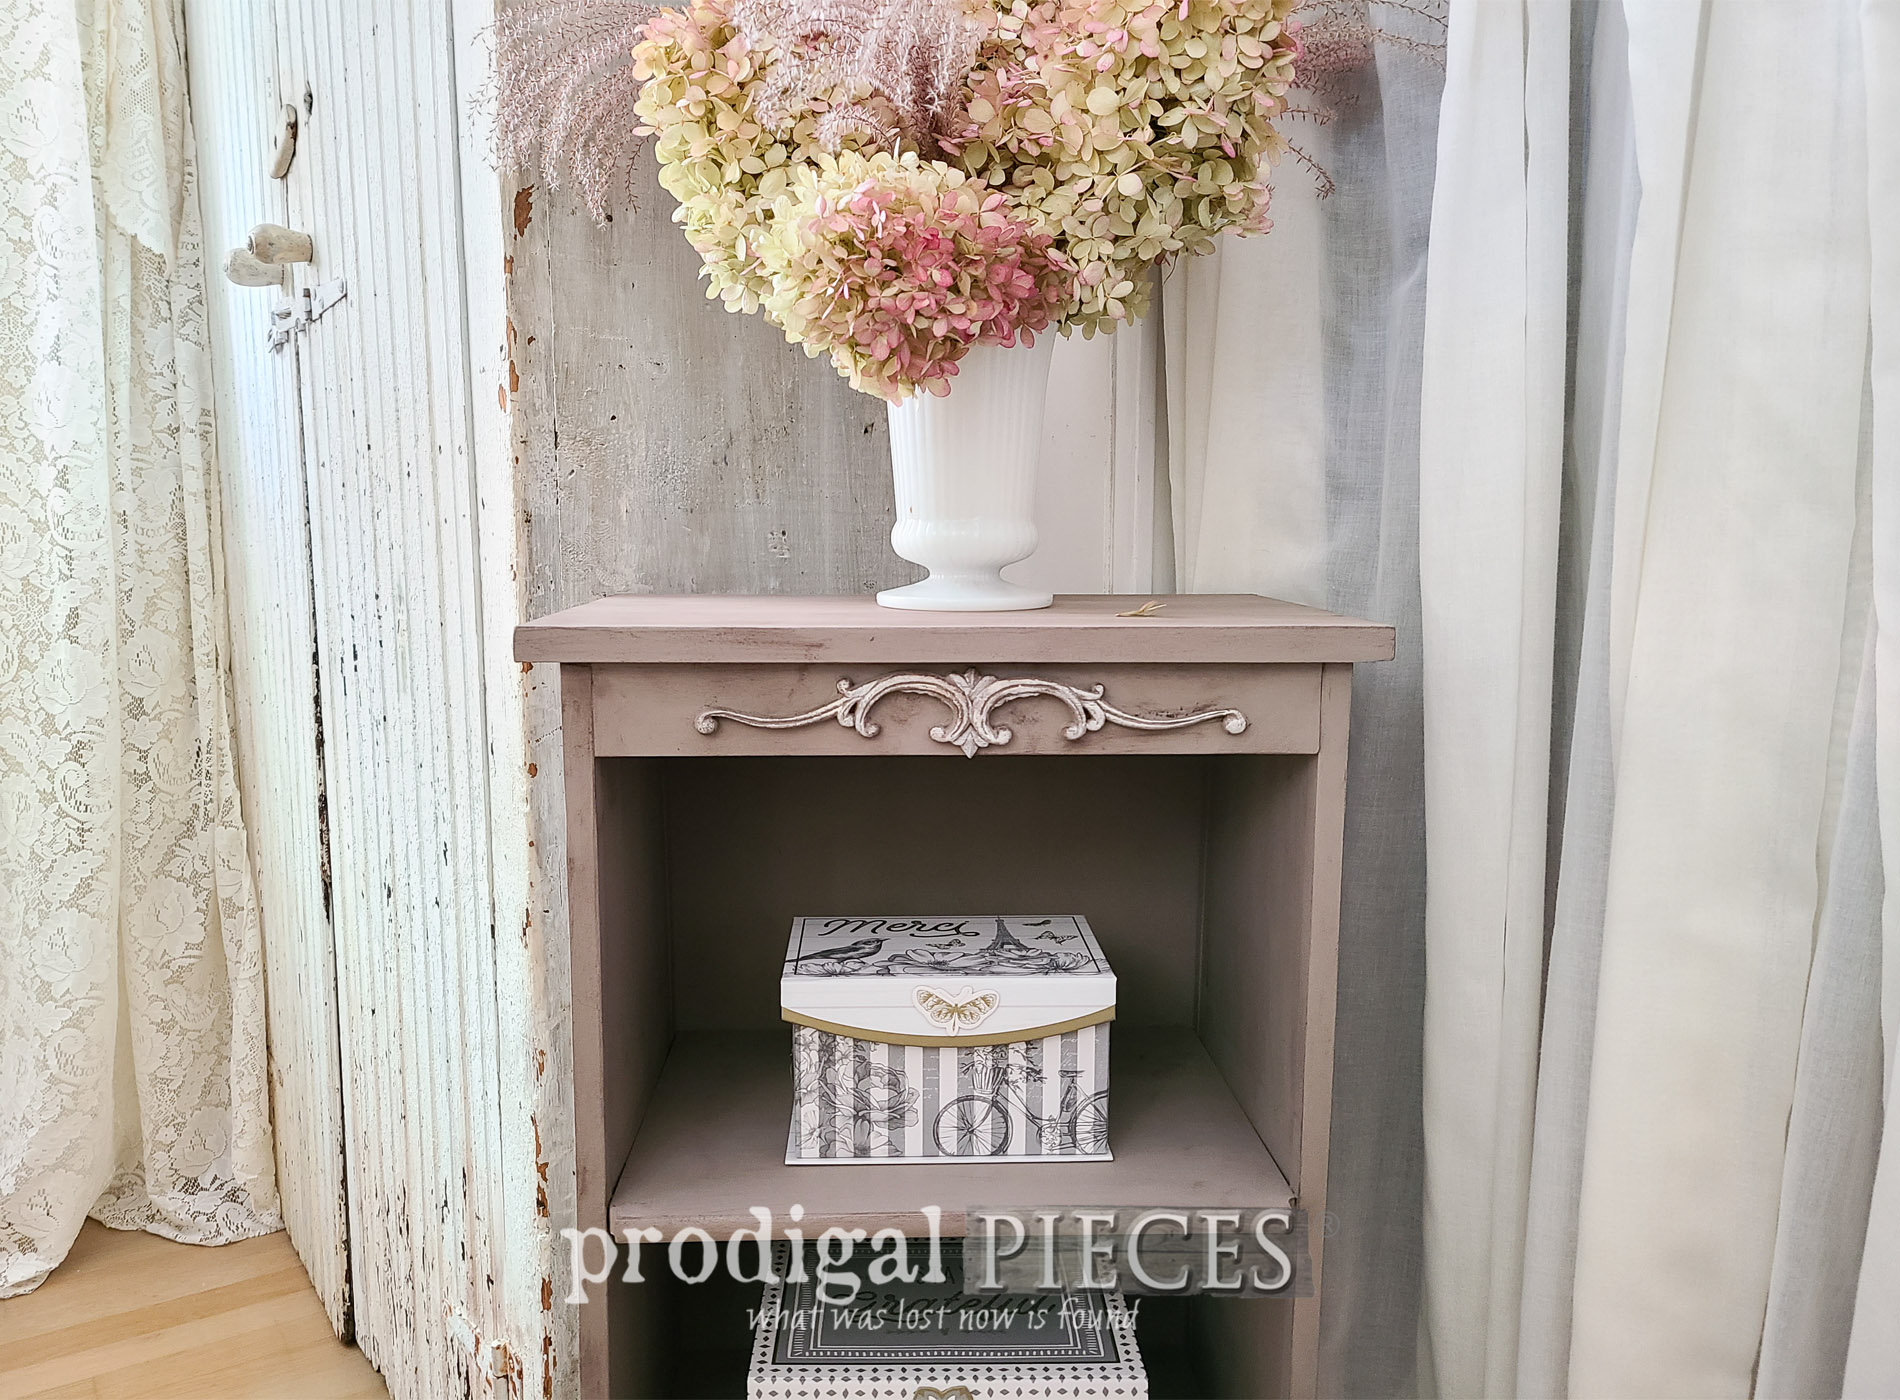 Featured Broken Furniture Upcycled into Home Decor by Larissa of Prodigal Pieces | prodigalpieces.com #prodigalpieces #diy #upcycled #home #homedecor #furniture